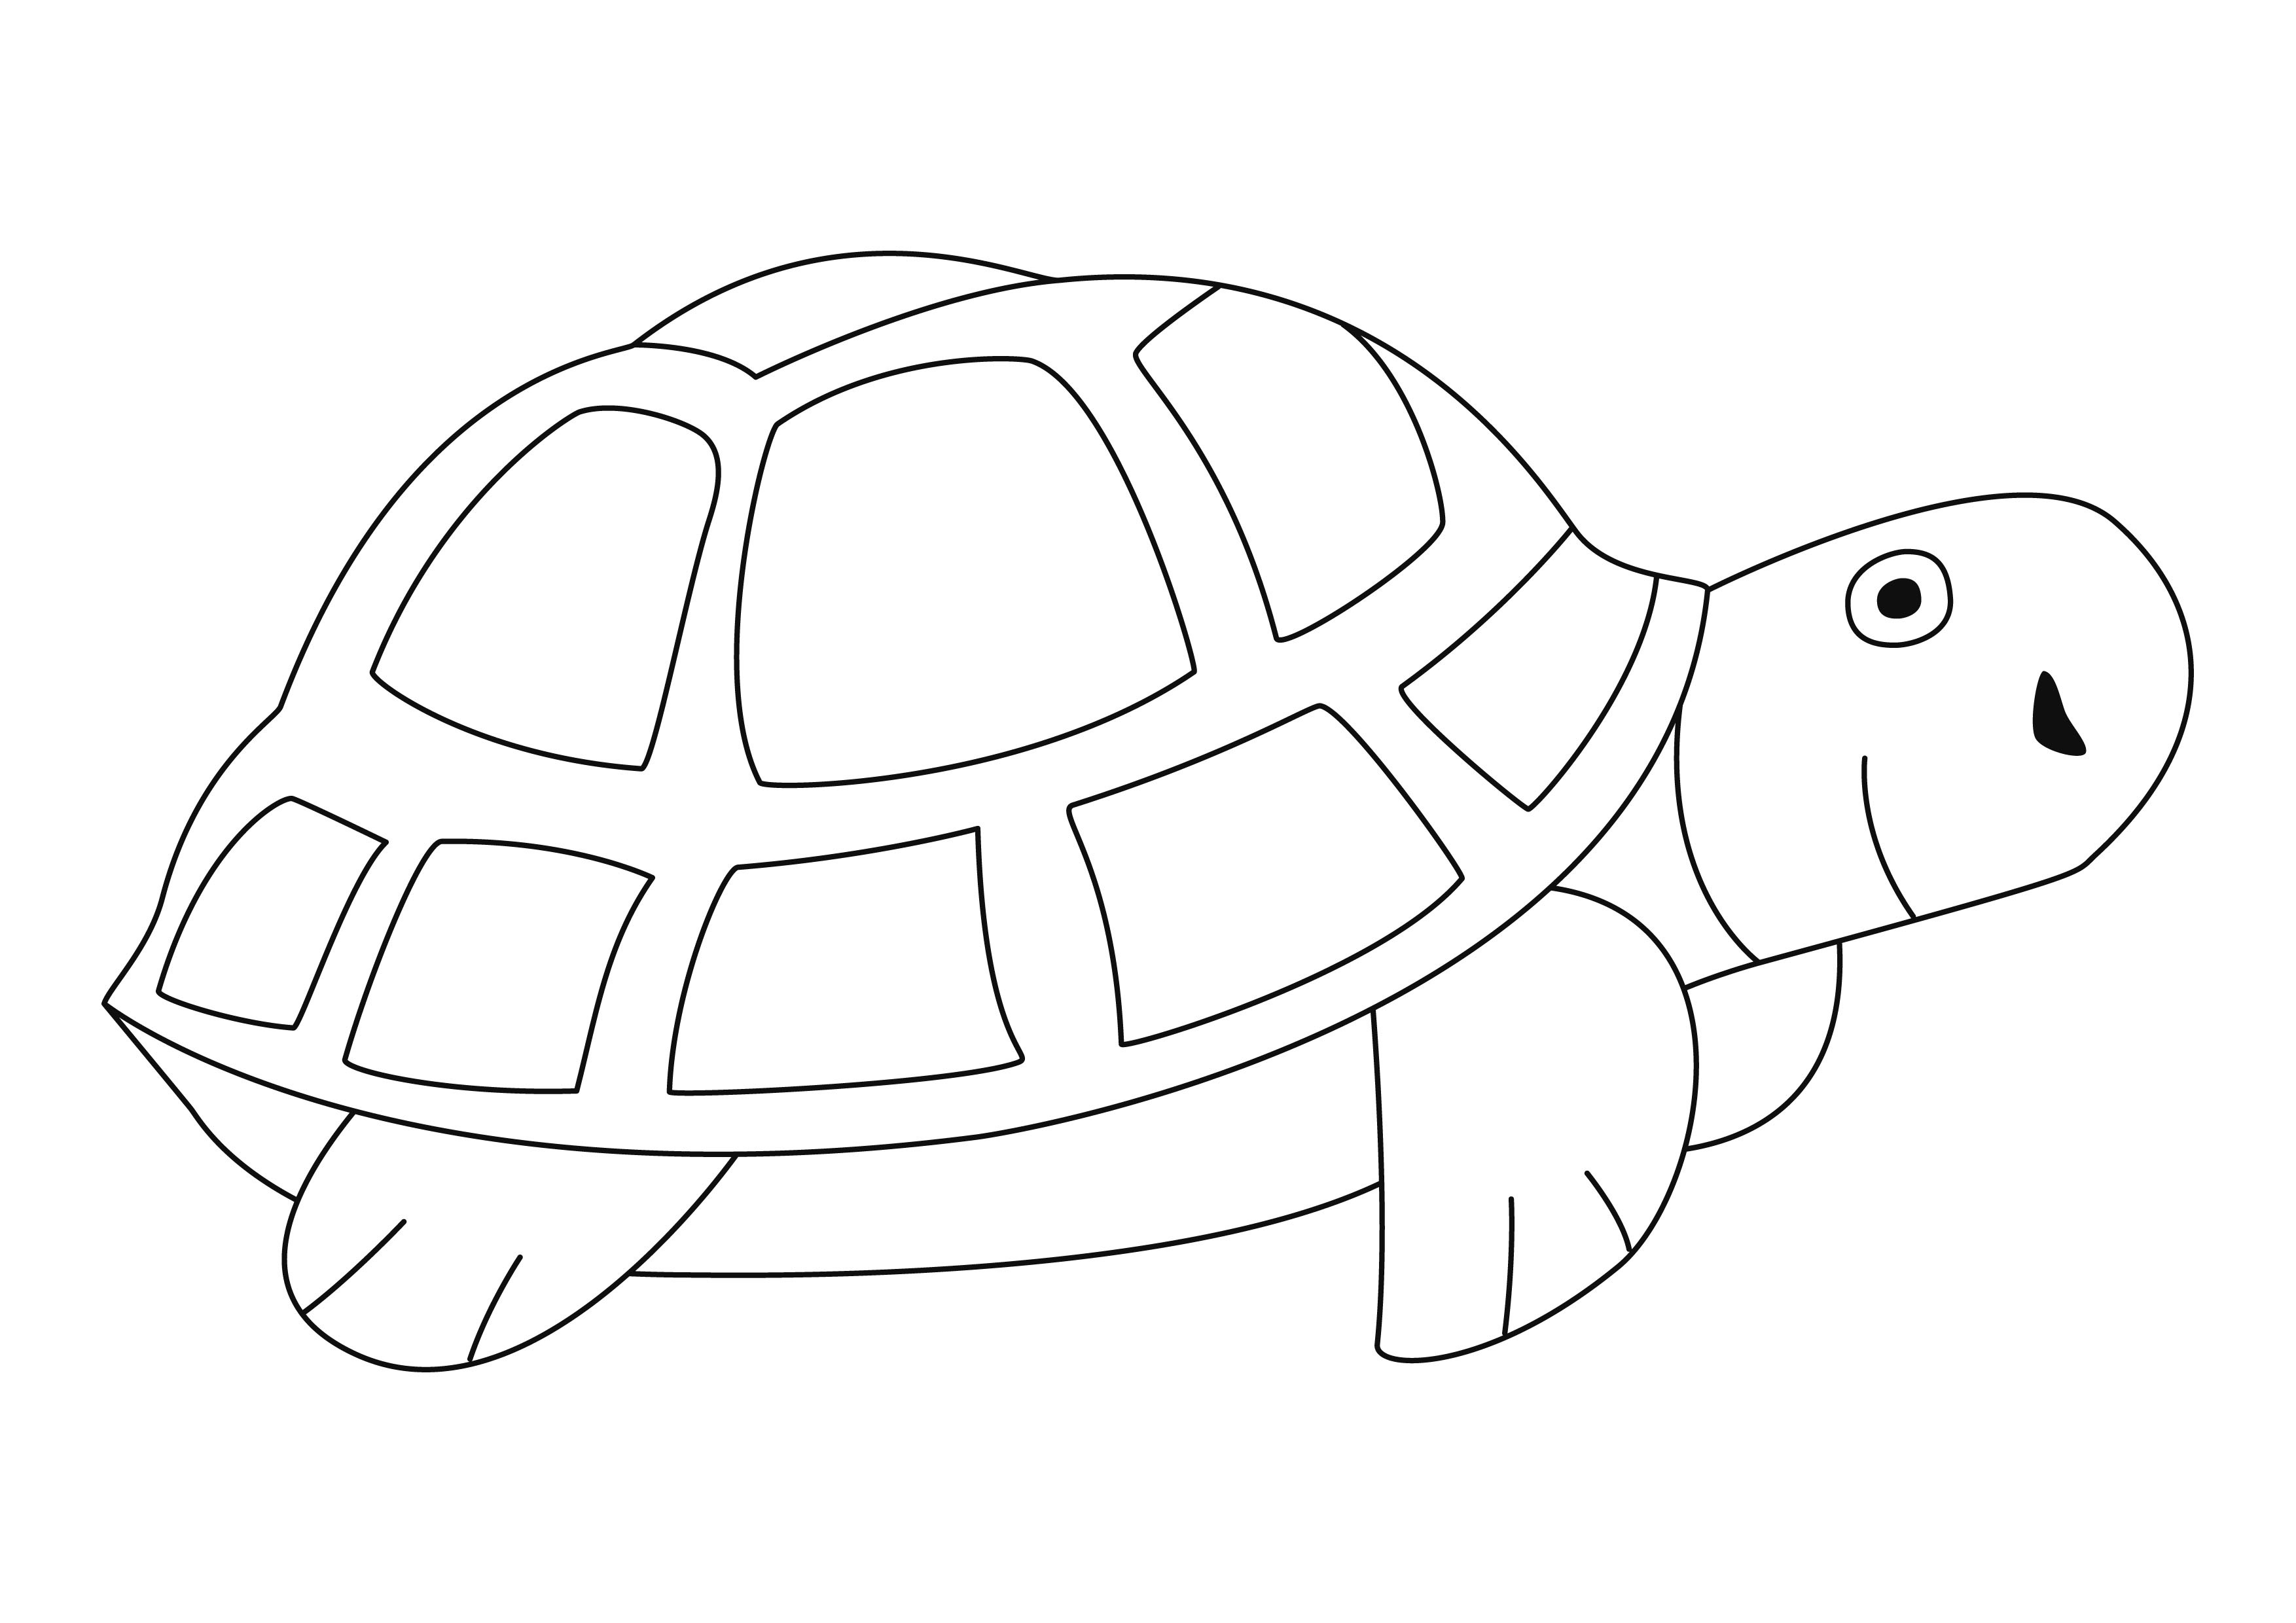 Coloriage - Animaux : Tortue 04 - 10 Doigts